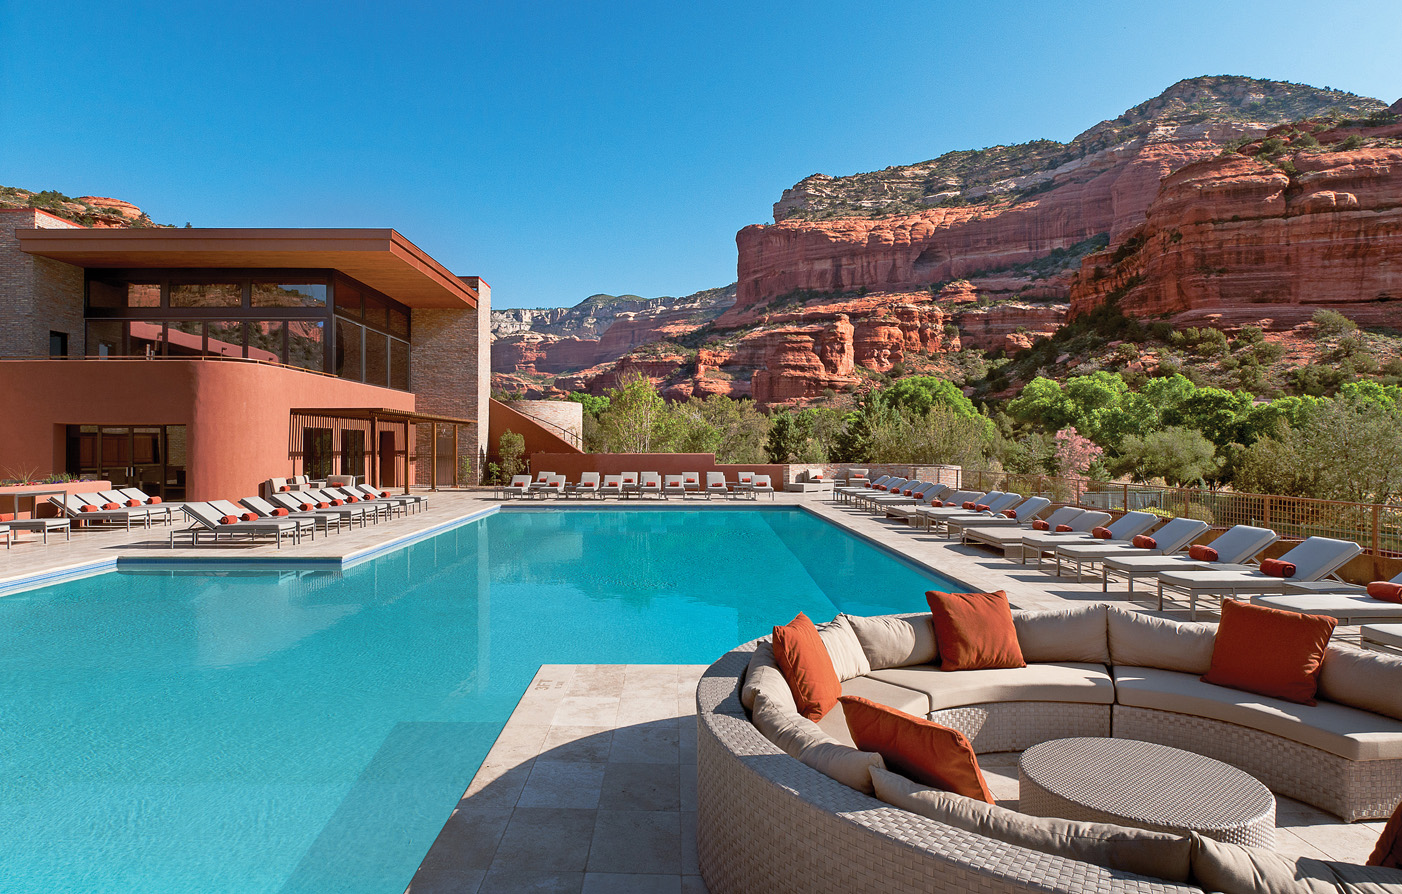 Most Hotels In The United States Enchantment Resort Sedona Arizona